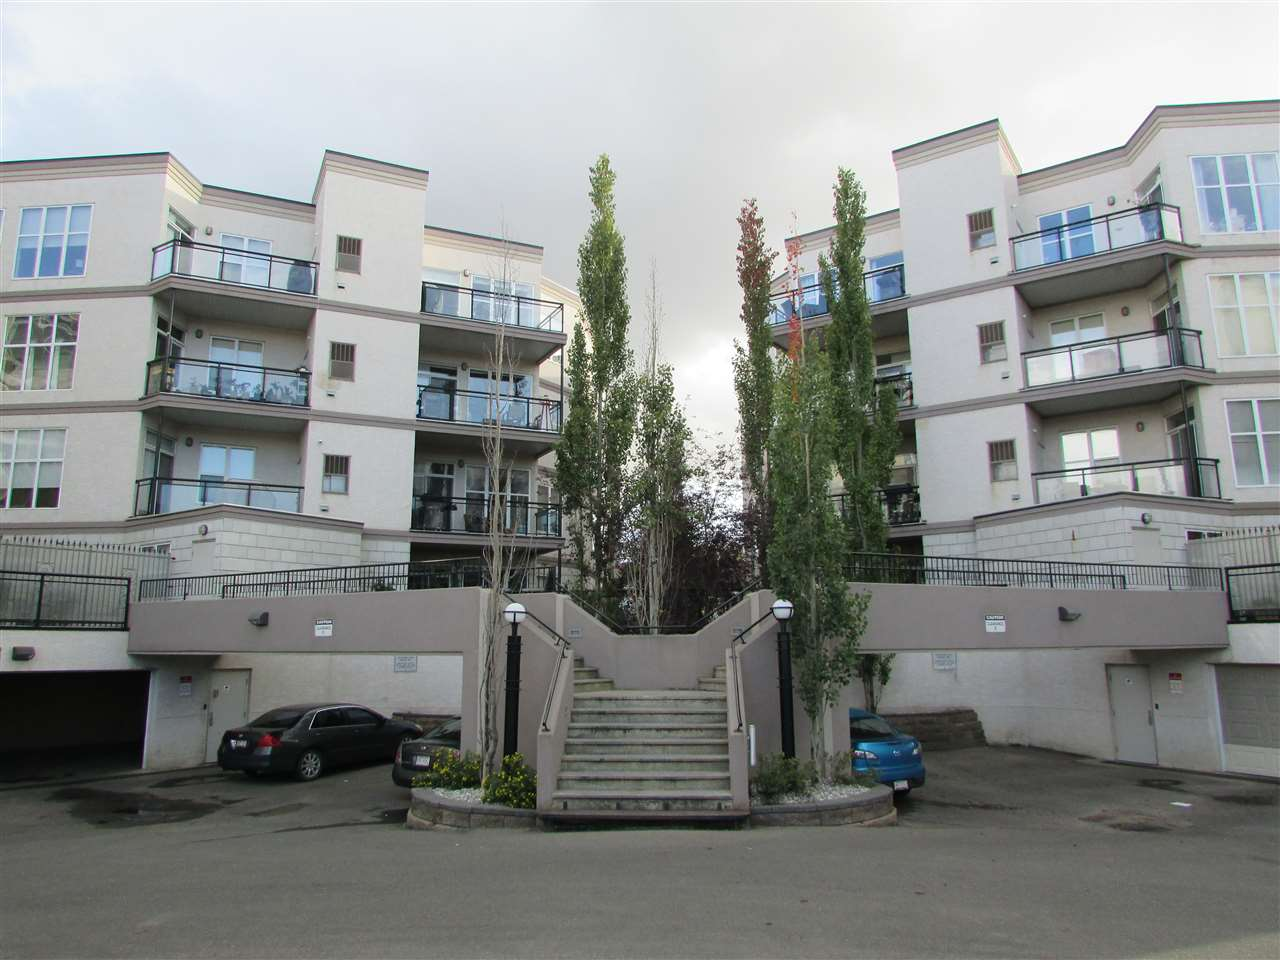 Main Photo: 112 4835 104A Street in Edmonton: Zone 15 Condo for sale : MLS(r) # E4047942